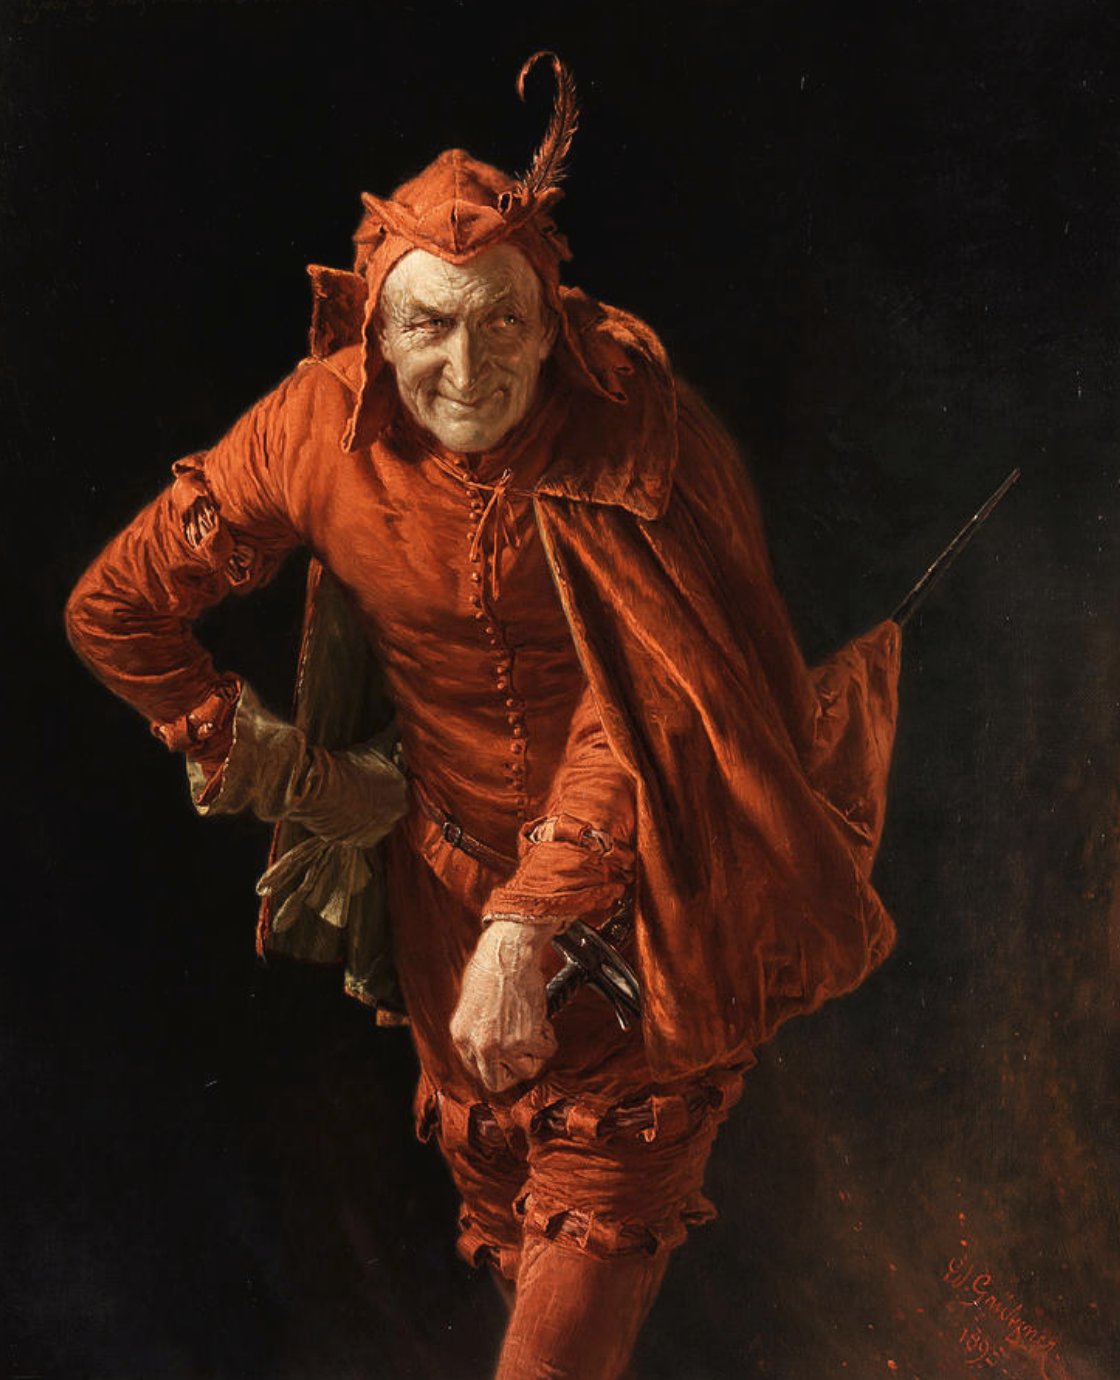 Eduard von Grützner: Mephisto by Eduard von Grützner  #Art #GermanArt #Paintings #ArtLovers